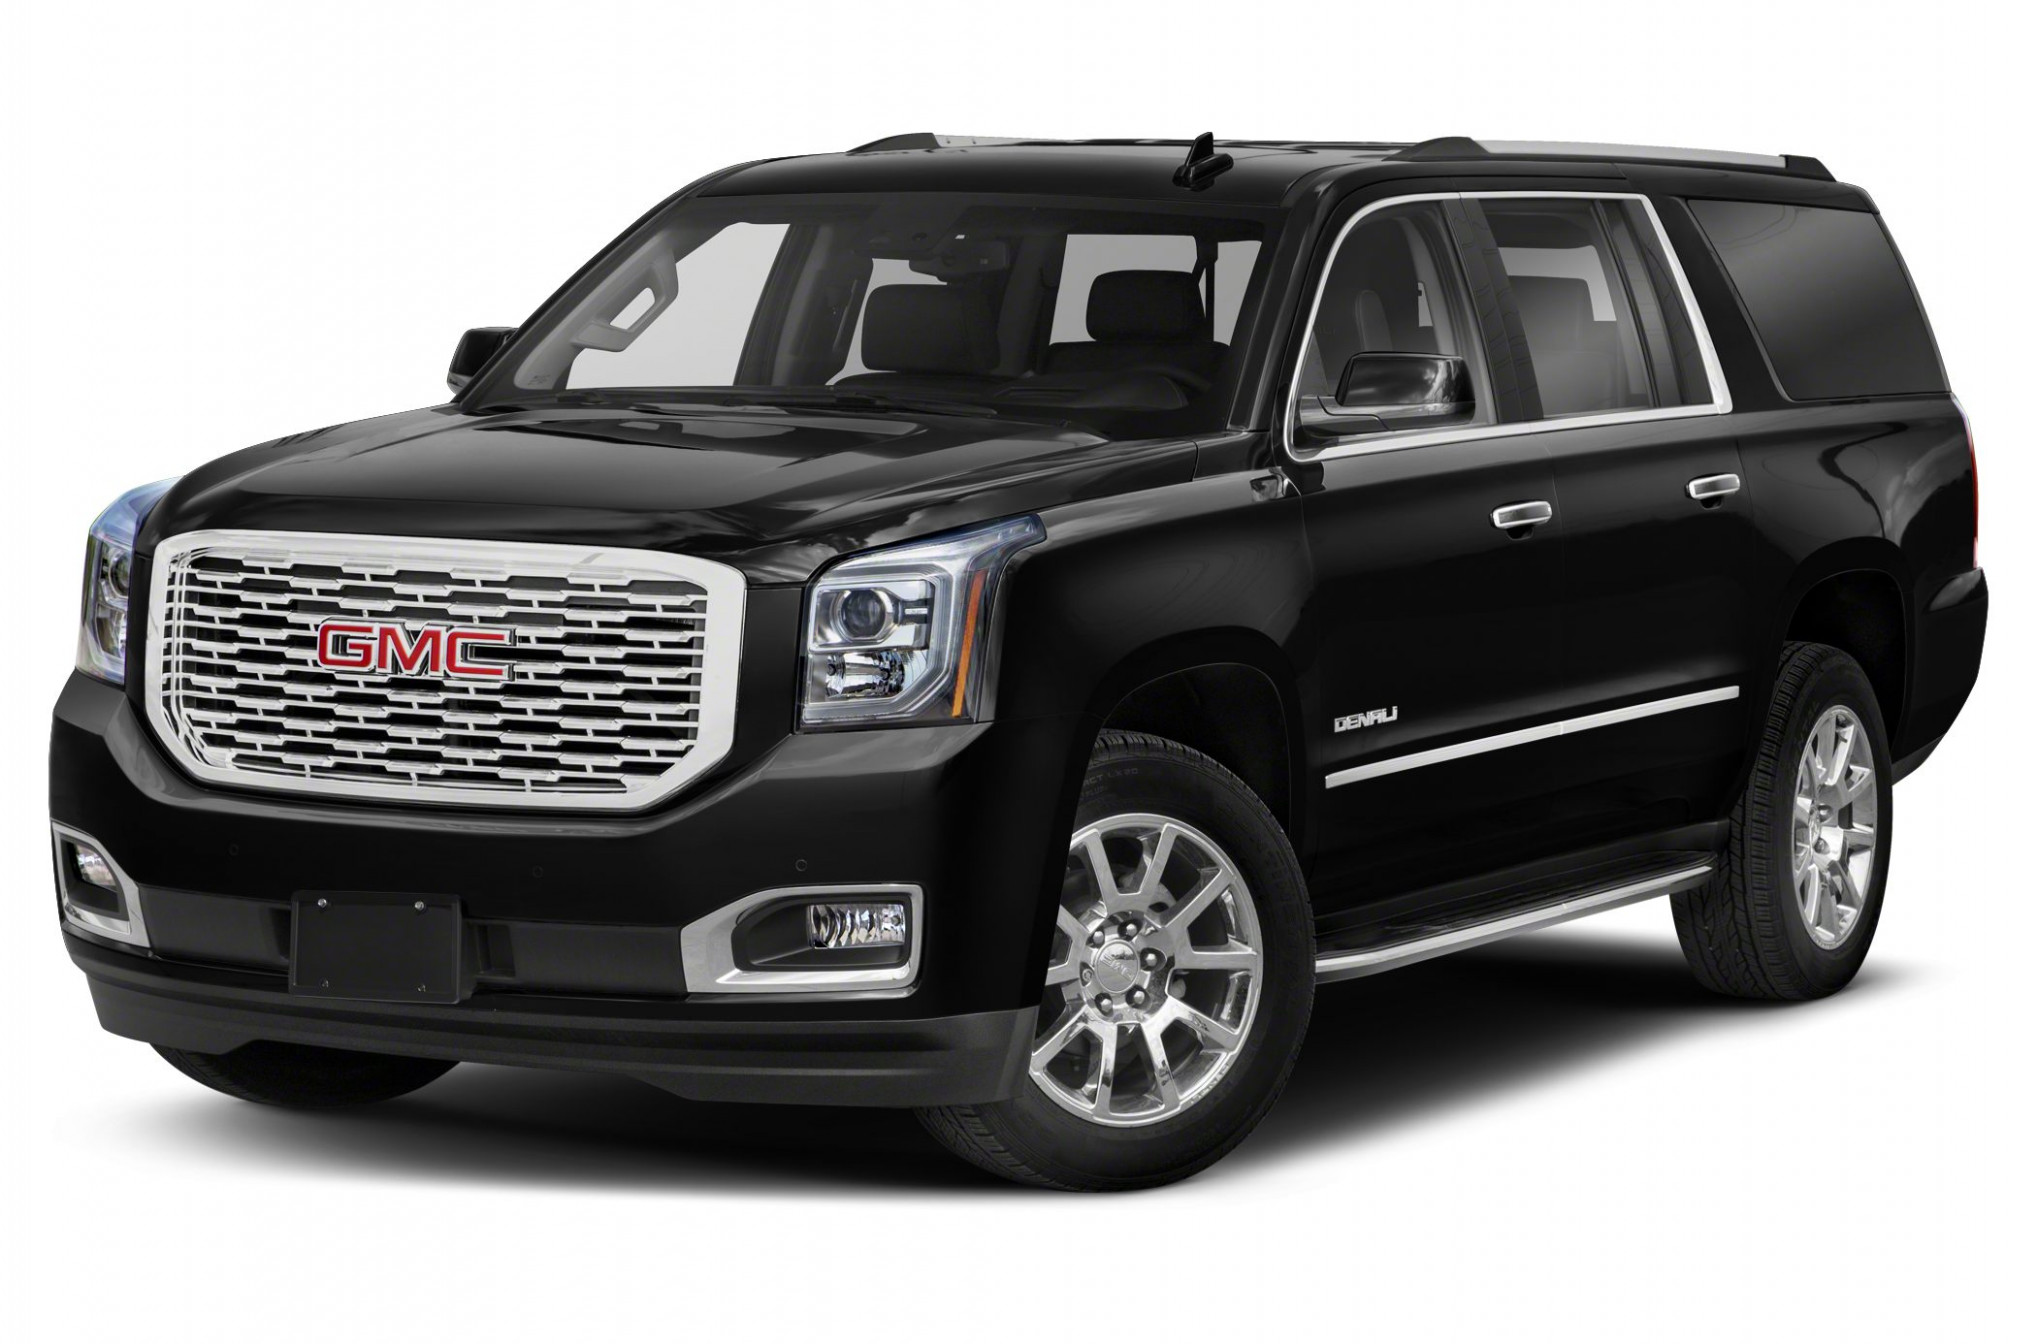 7 GMC Yukon XL Denali 7x7 Pictures - 2020 gmc denali colors